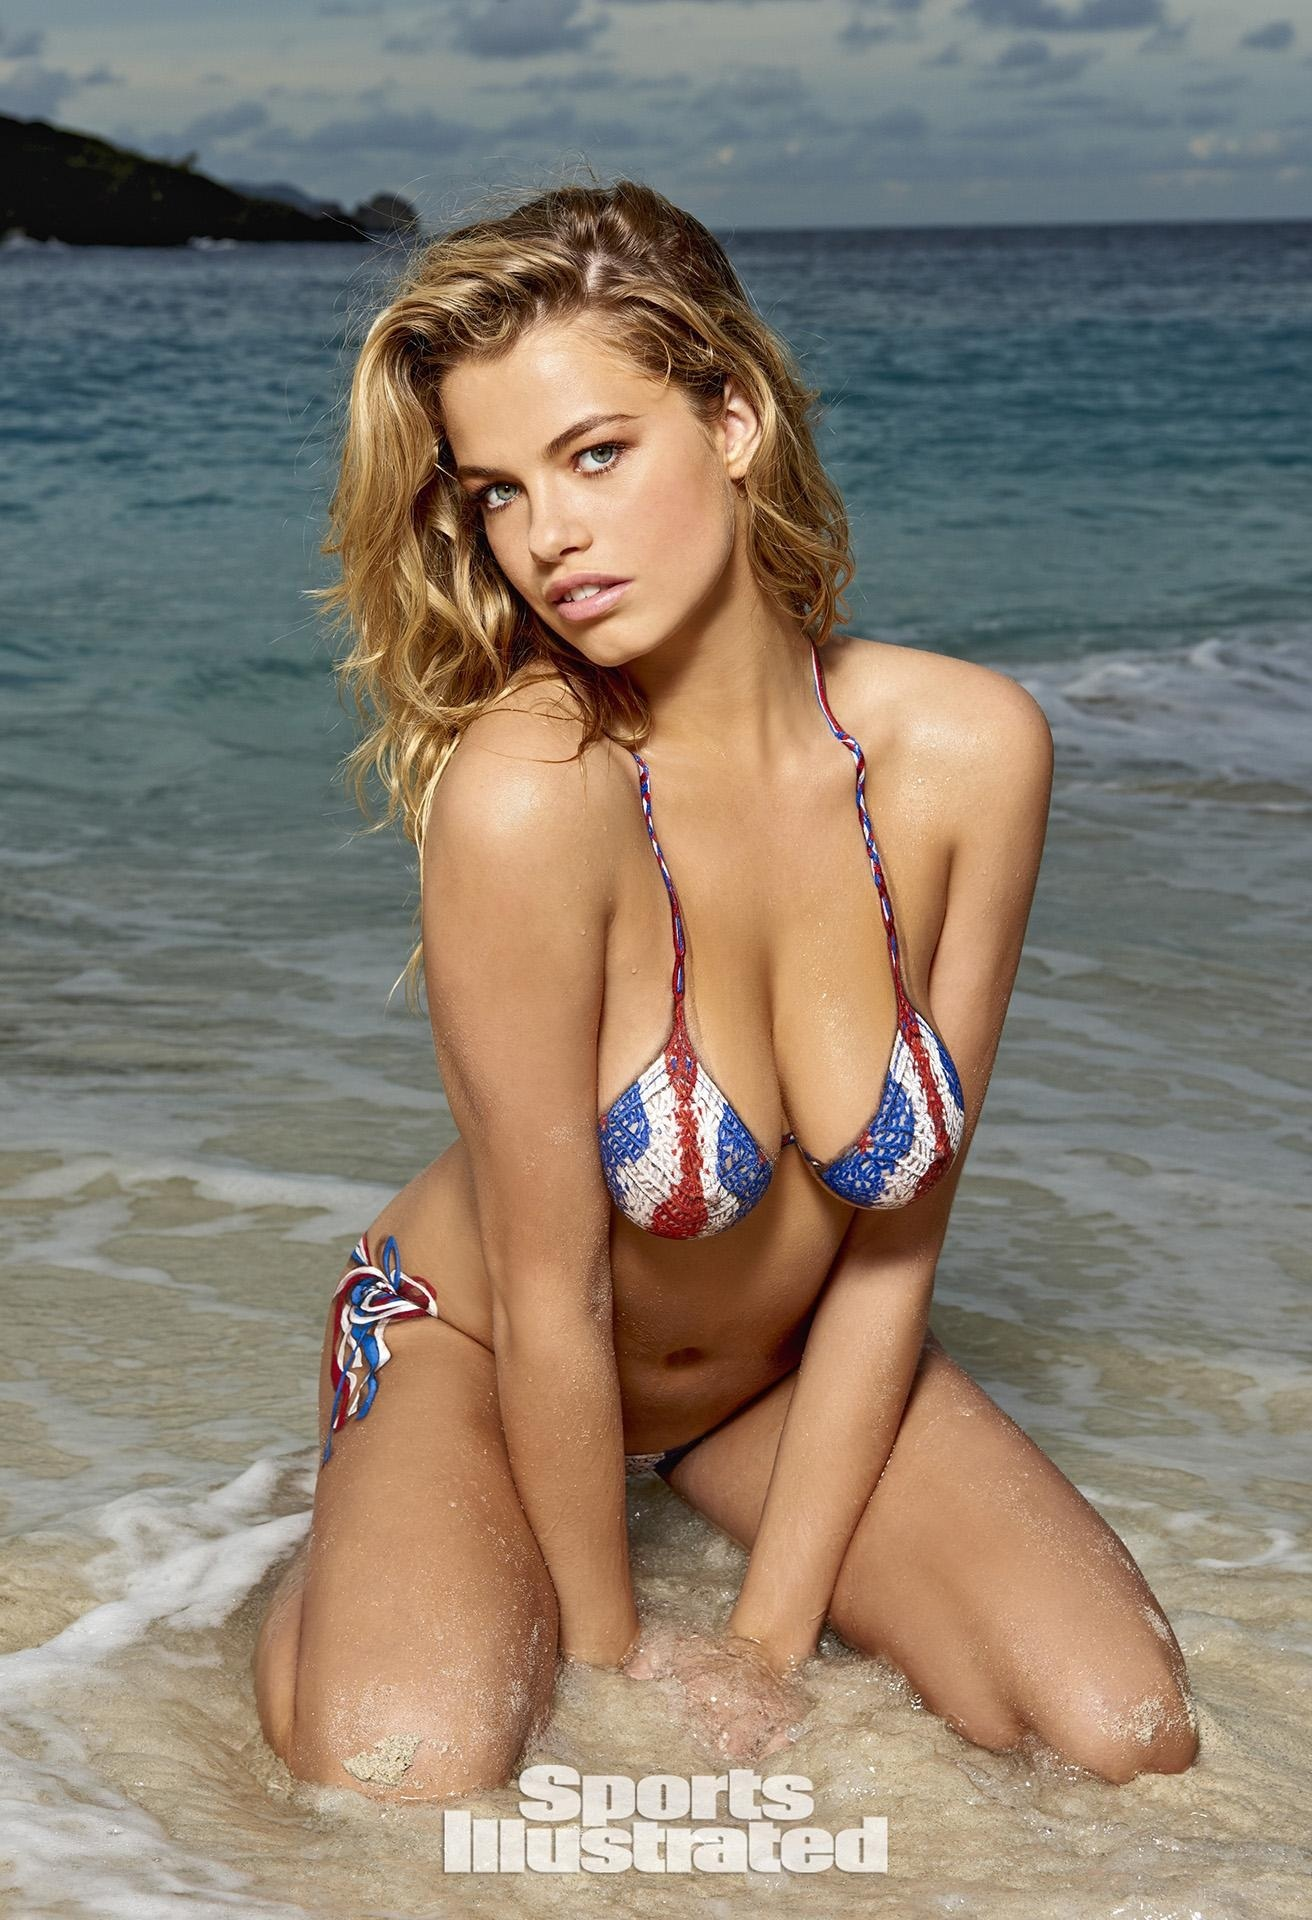 Hailey Clauson Bodypaint Sports Illustrated Itokemb Ps Hailey Clauson